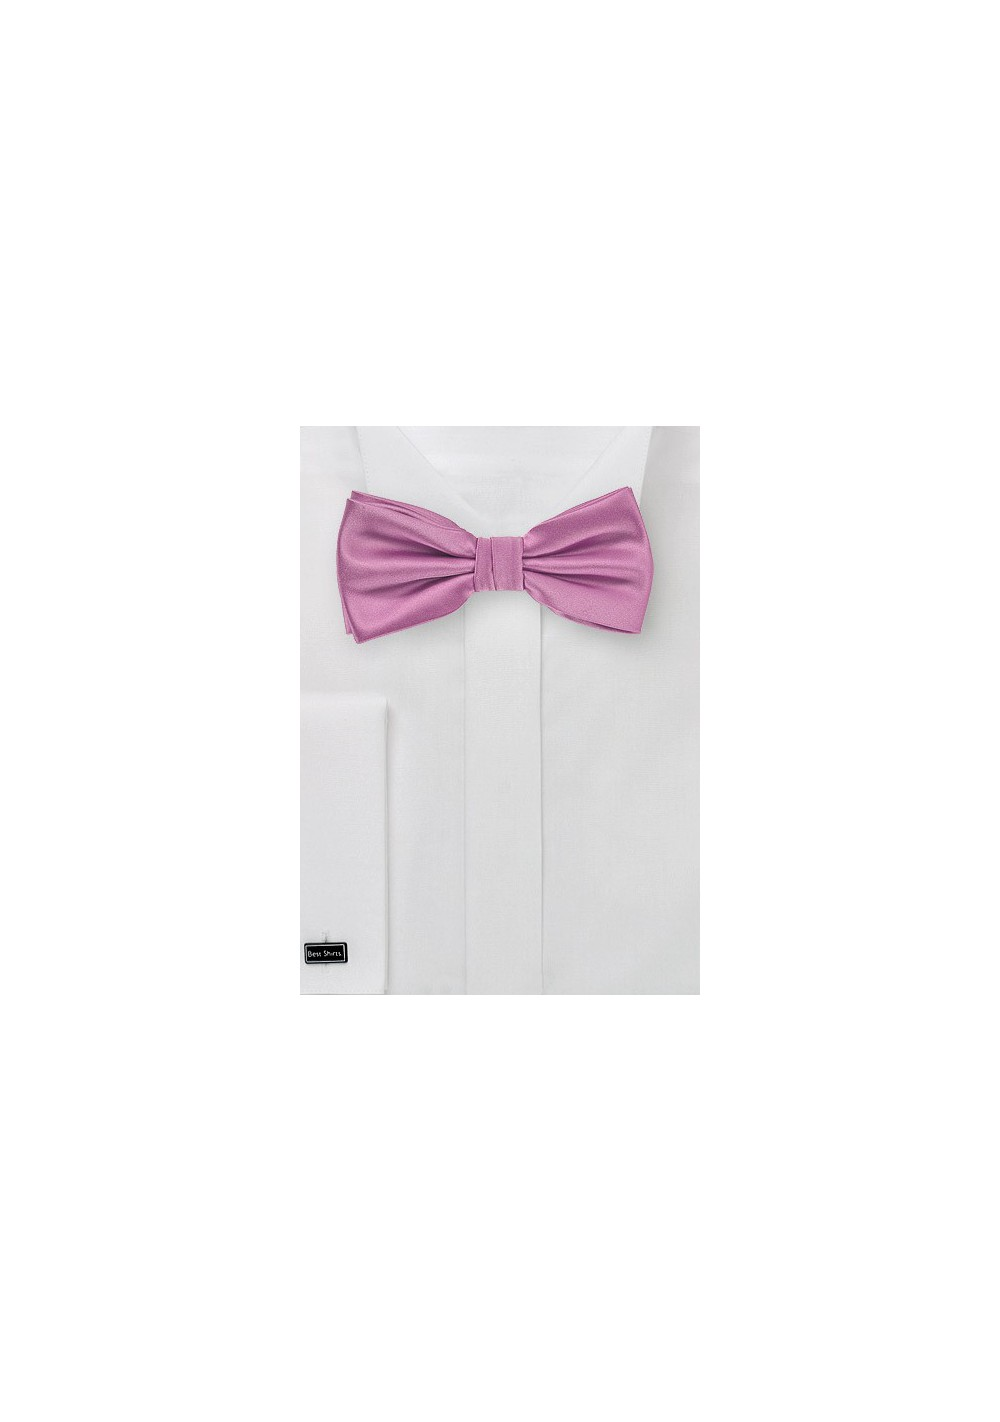 Orchid Pink Colored Bow Tie